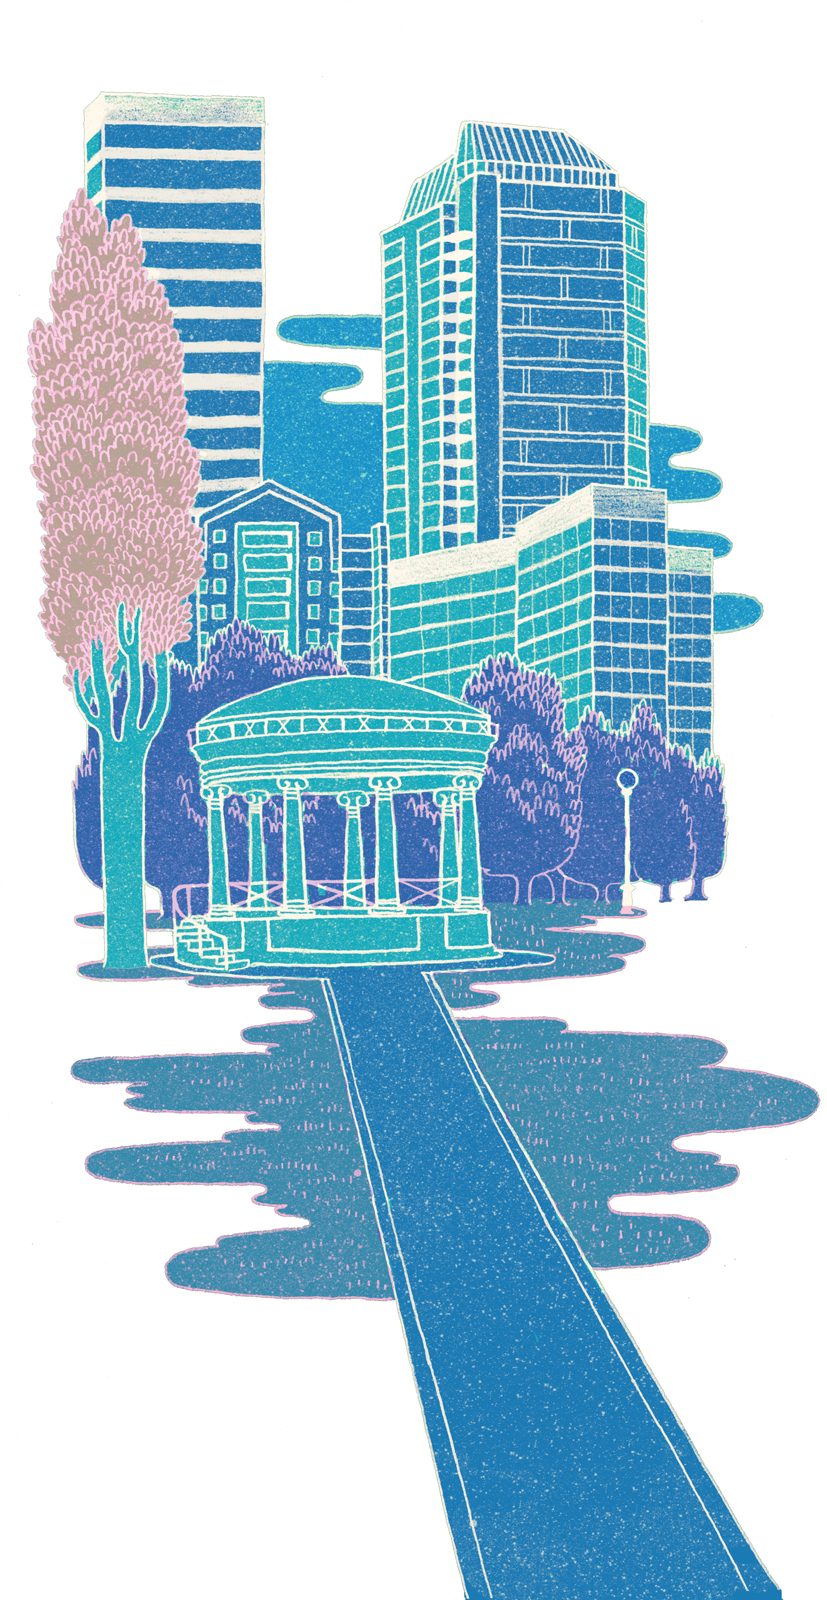 101 boston commons illustration